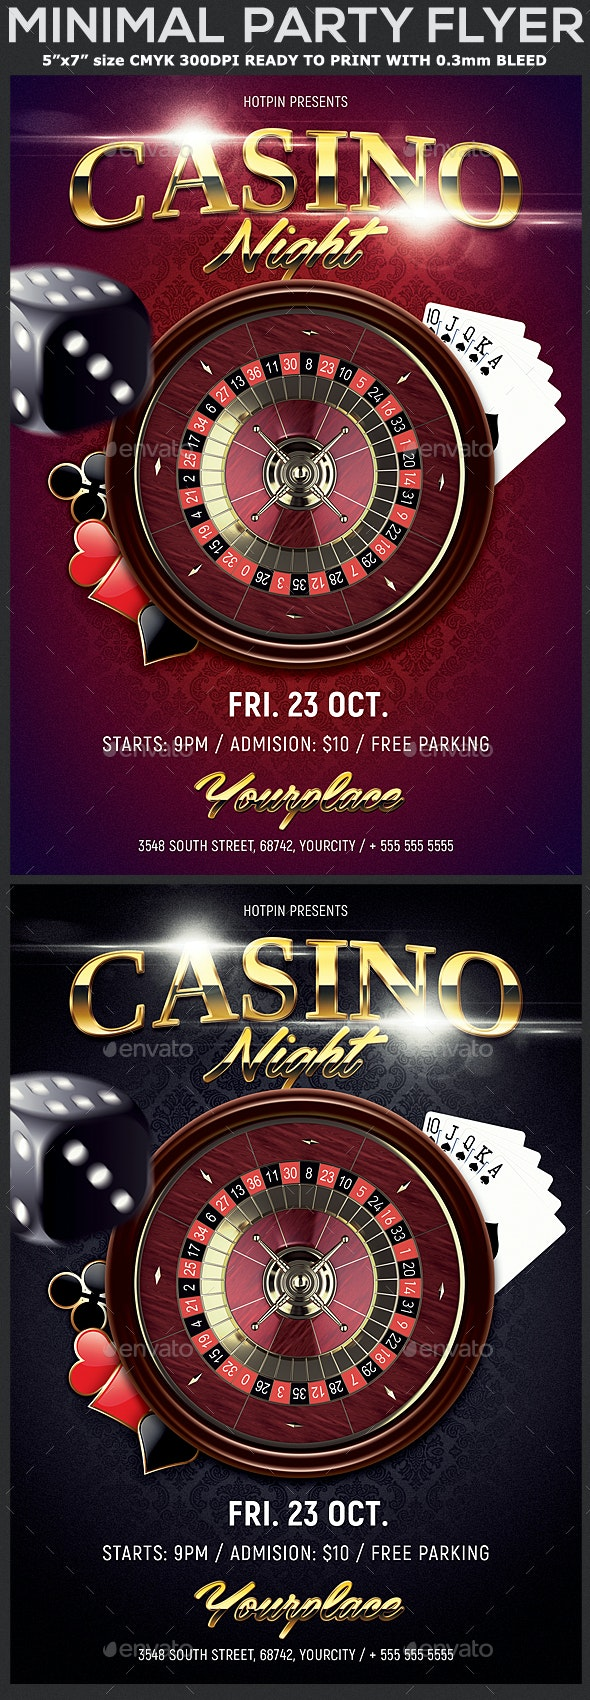 Casino Night Flyer Template - Events Flyers